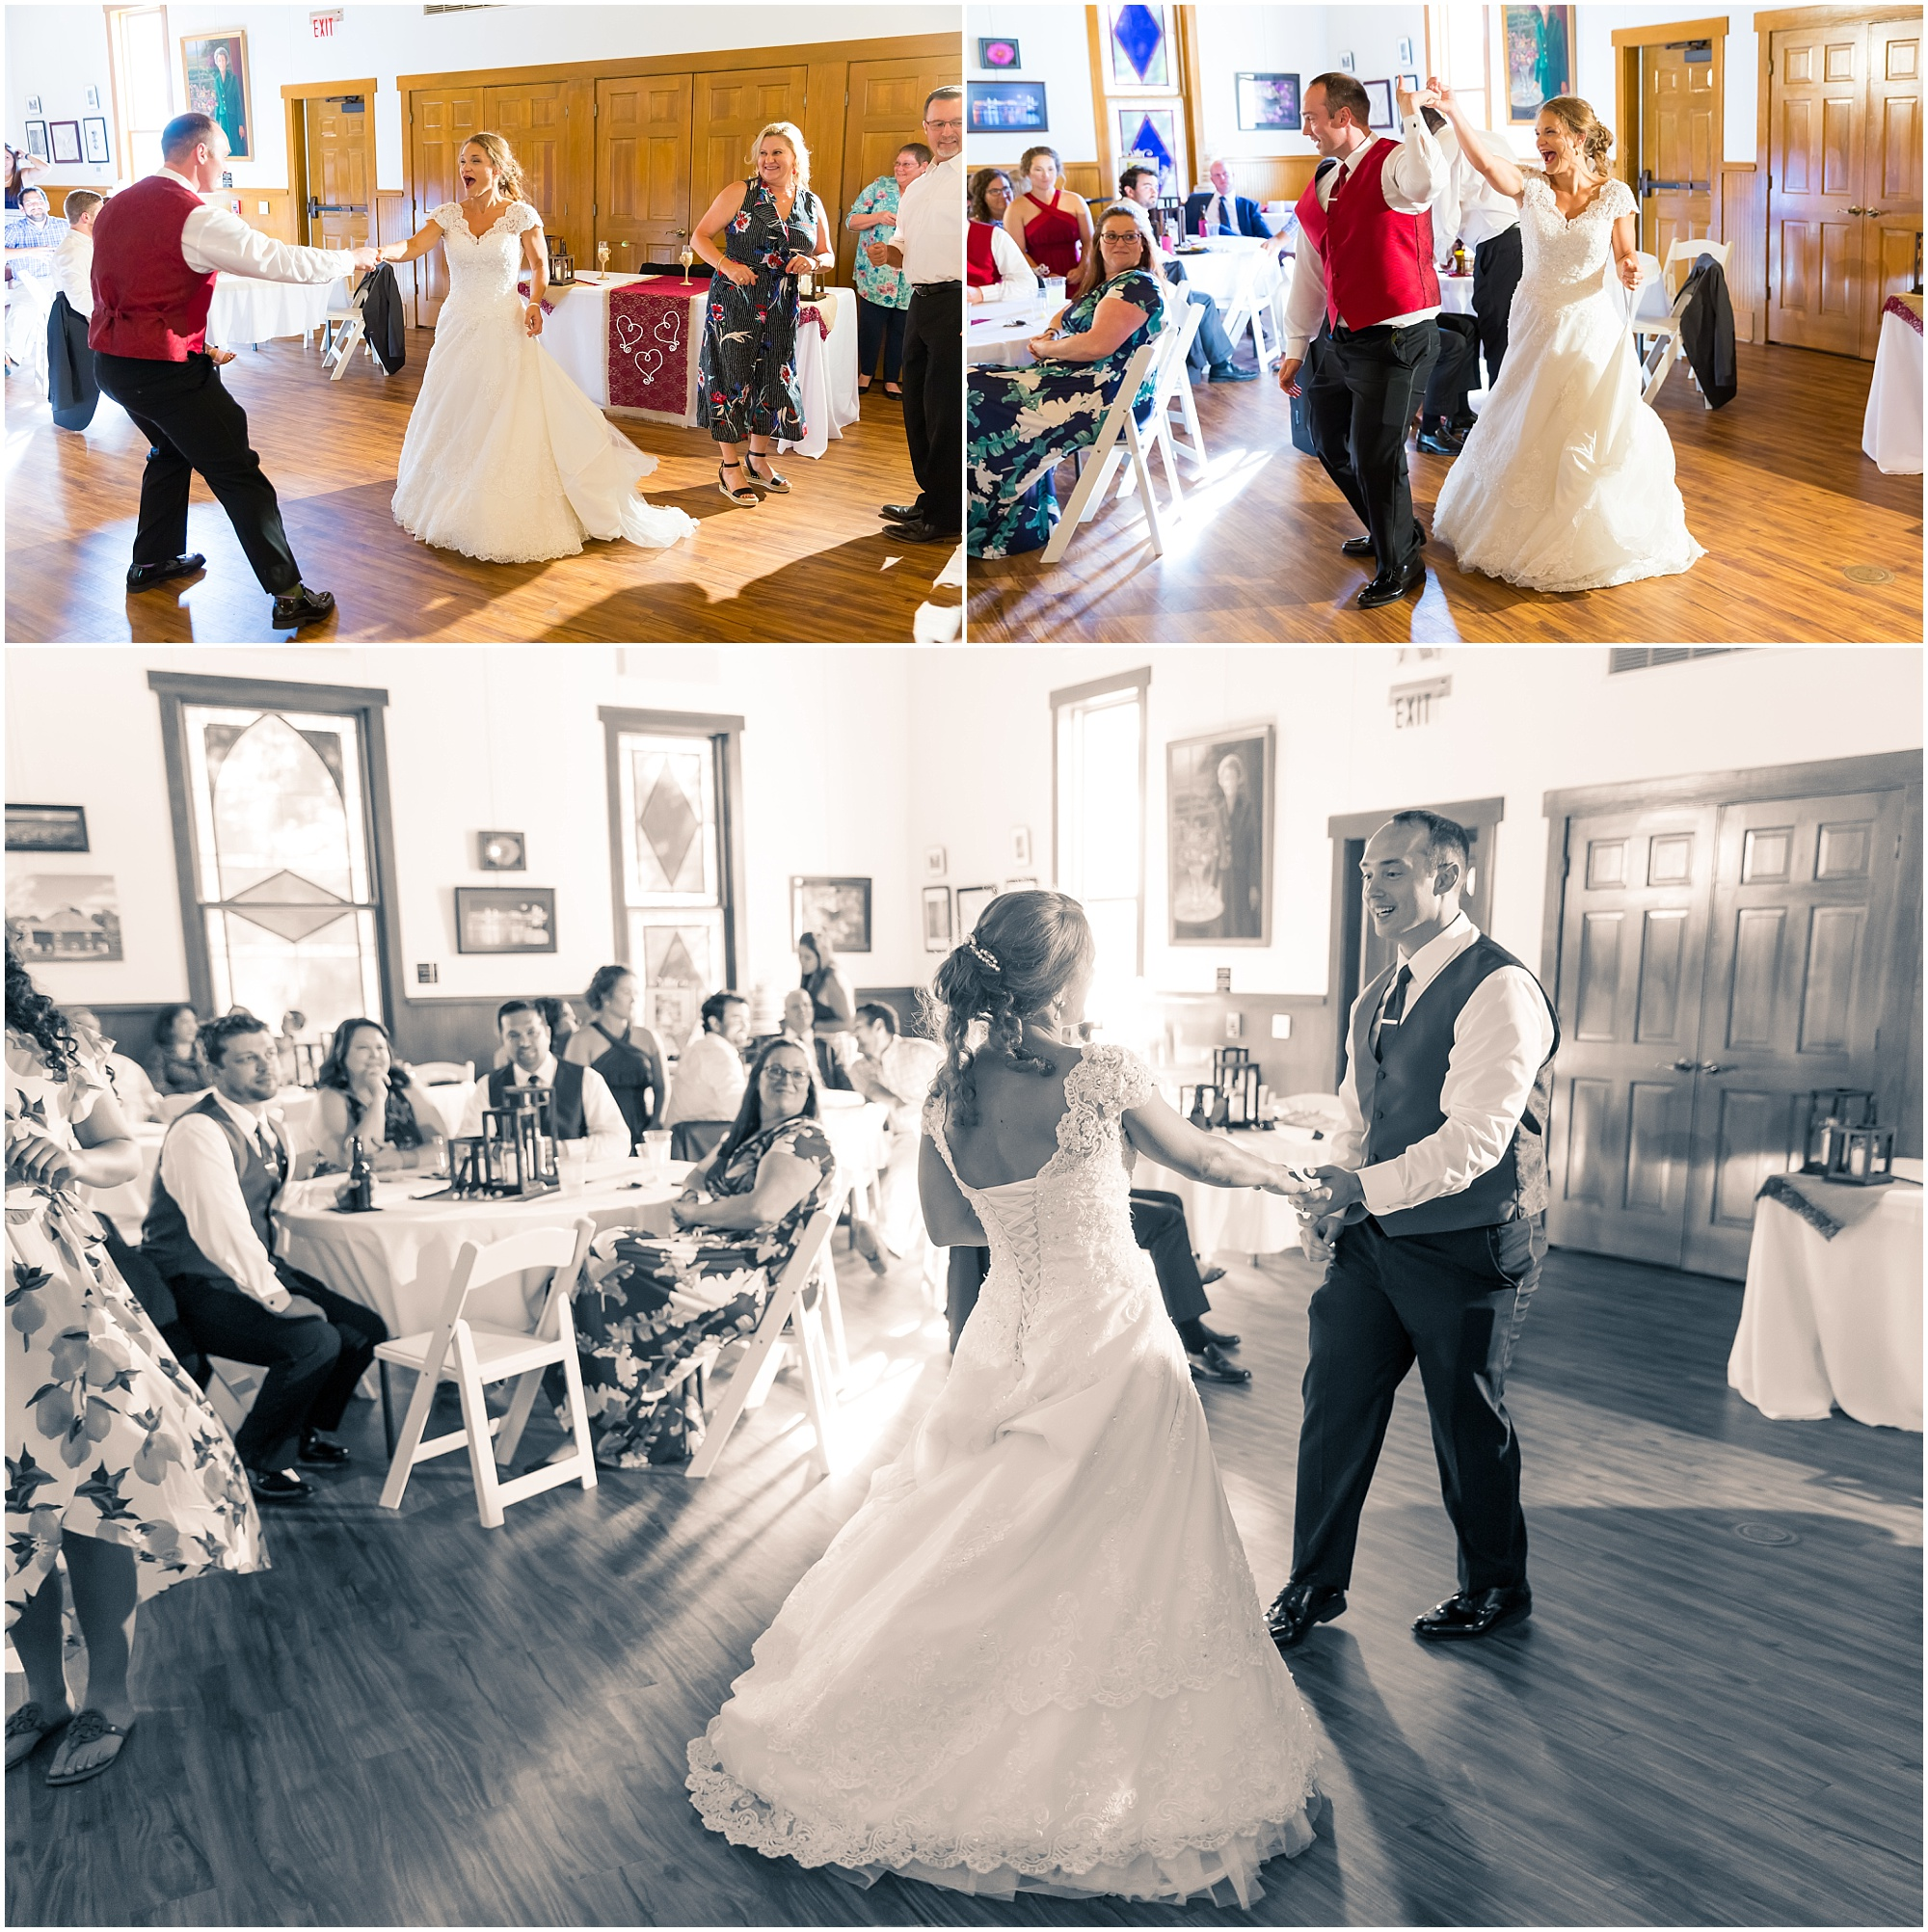 A bride and groom swing dance during their wedding reception in Waco, Texas - Jason & Melaina Photography - www.jasonandmelaina.com